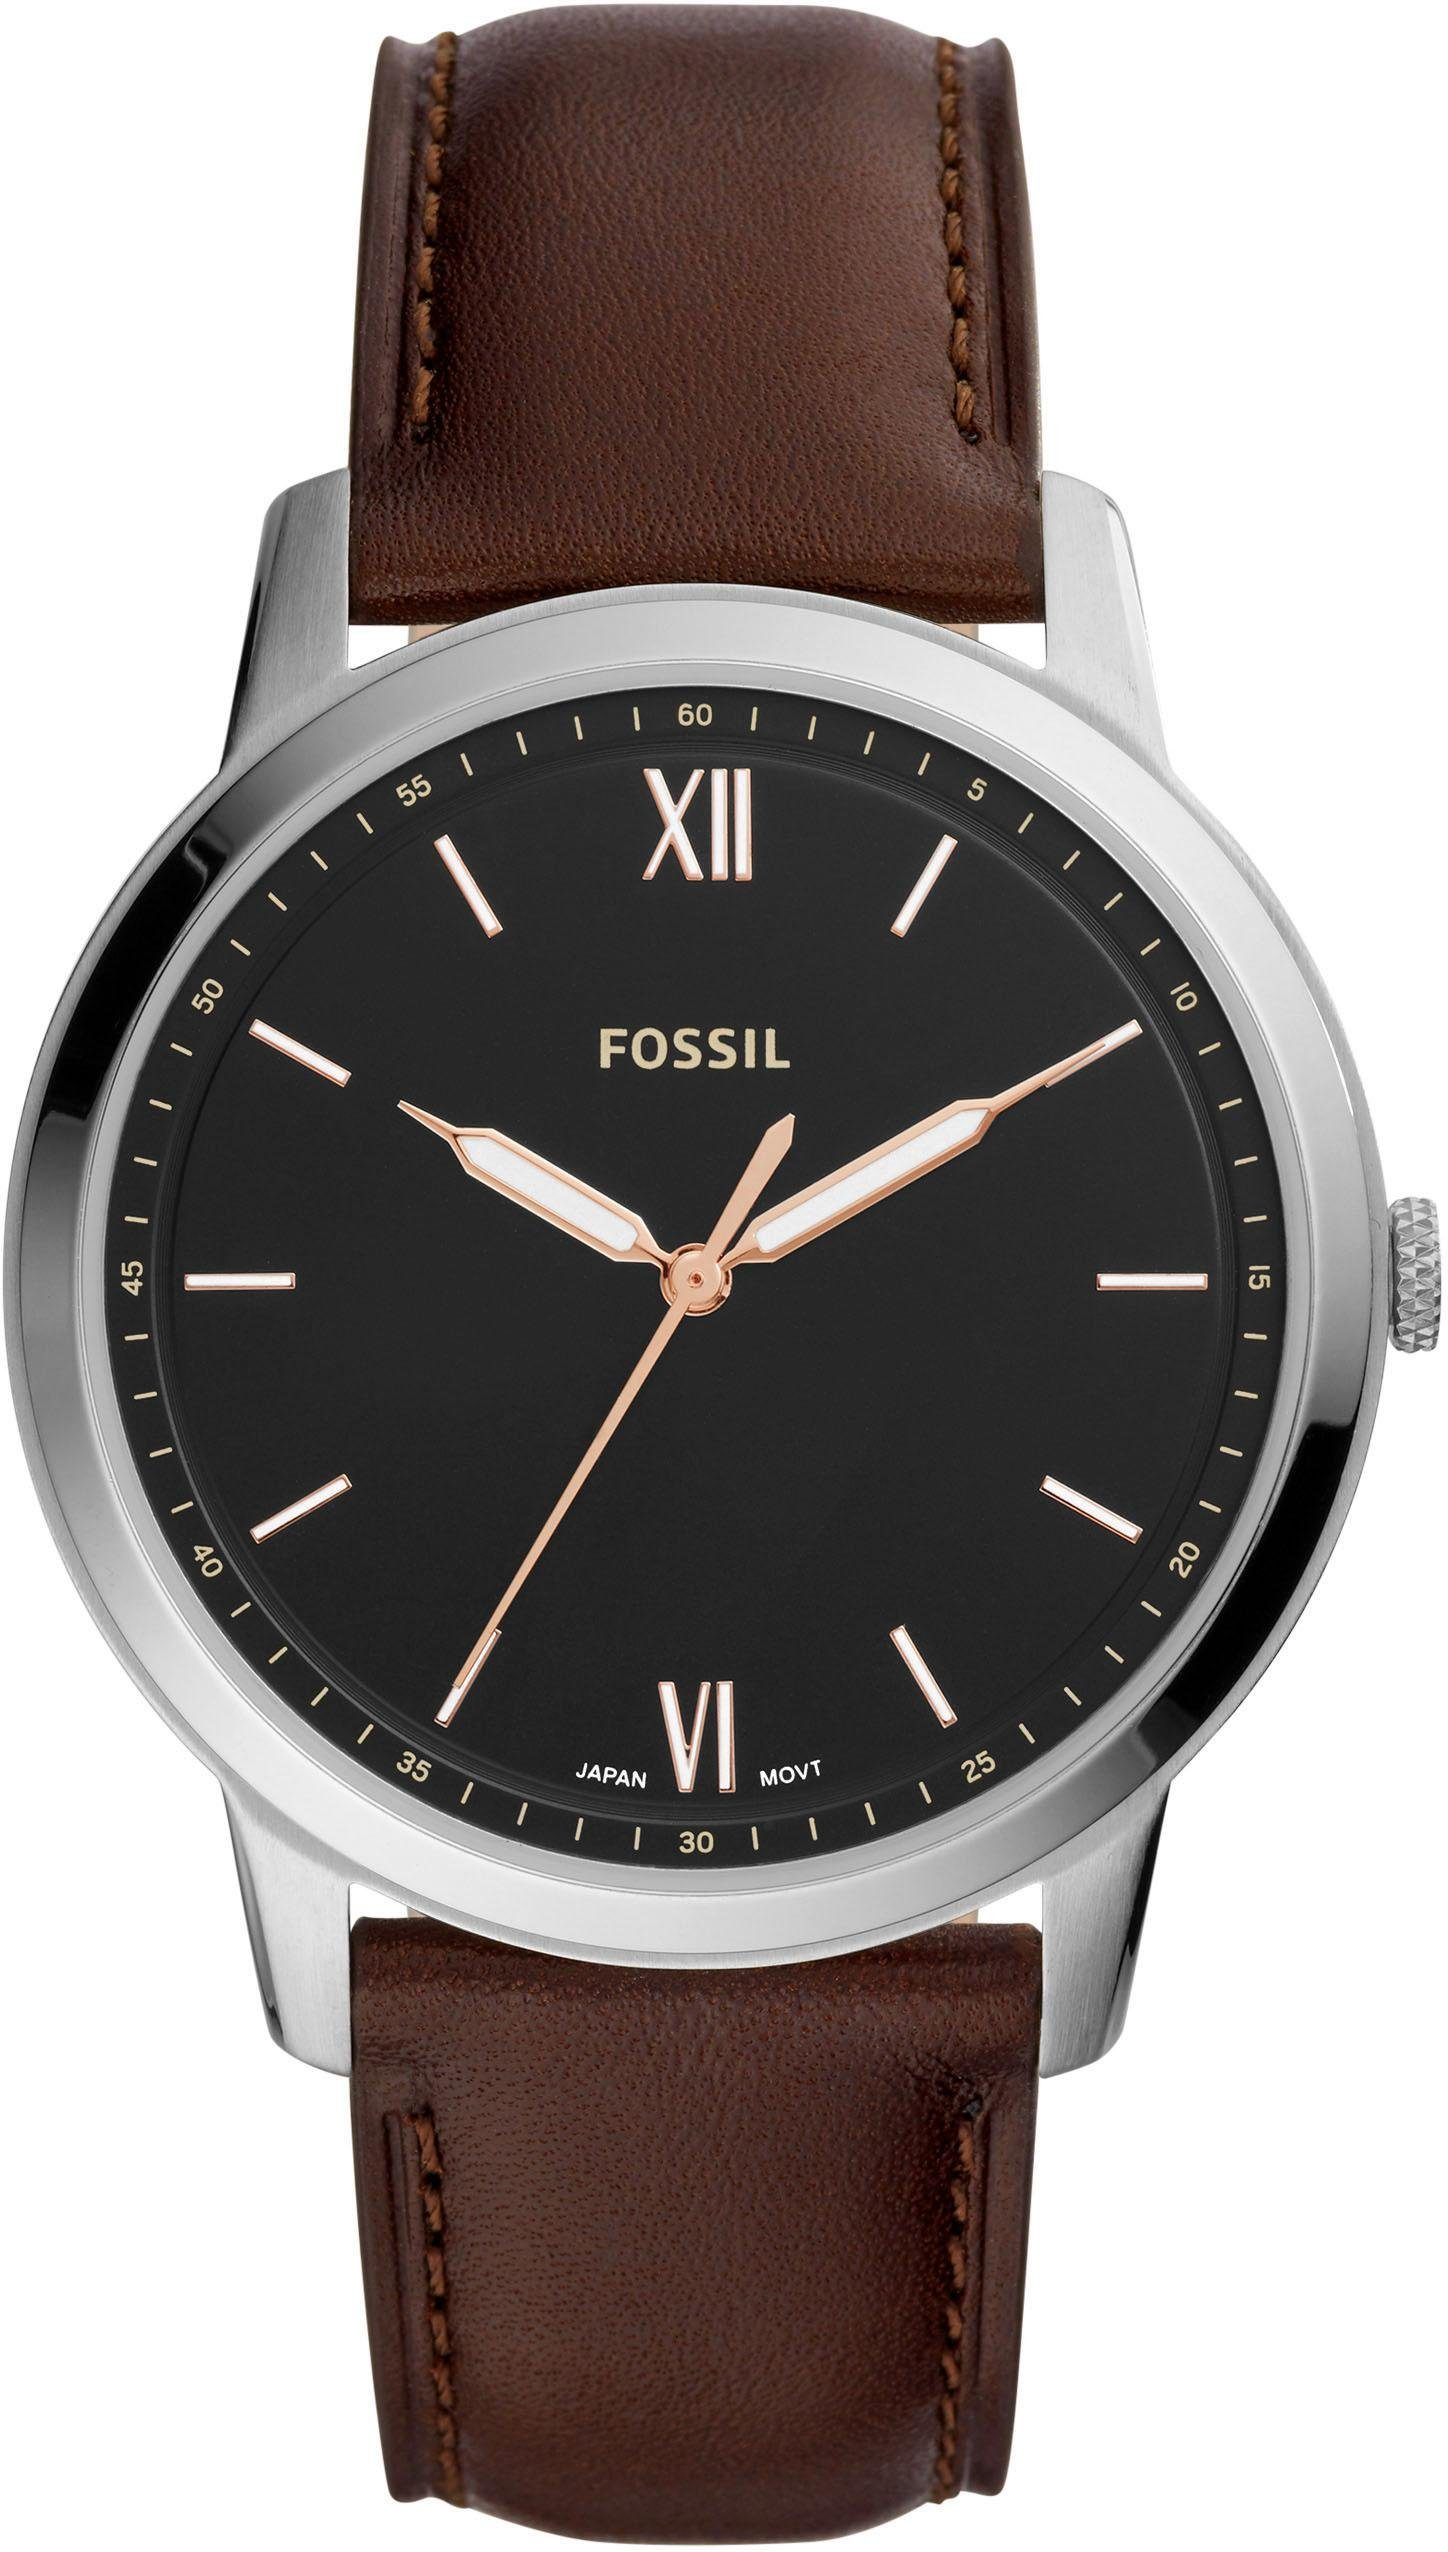 Fossil Quarzuhr »THE MINIMALIST 3H, FS5464«